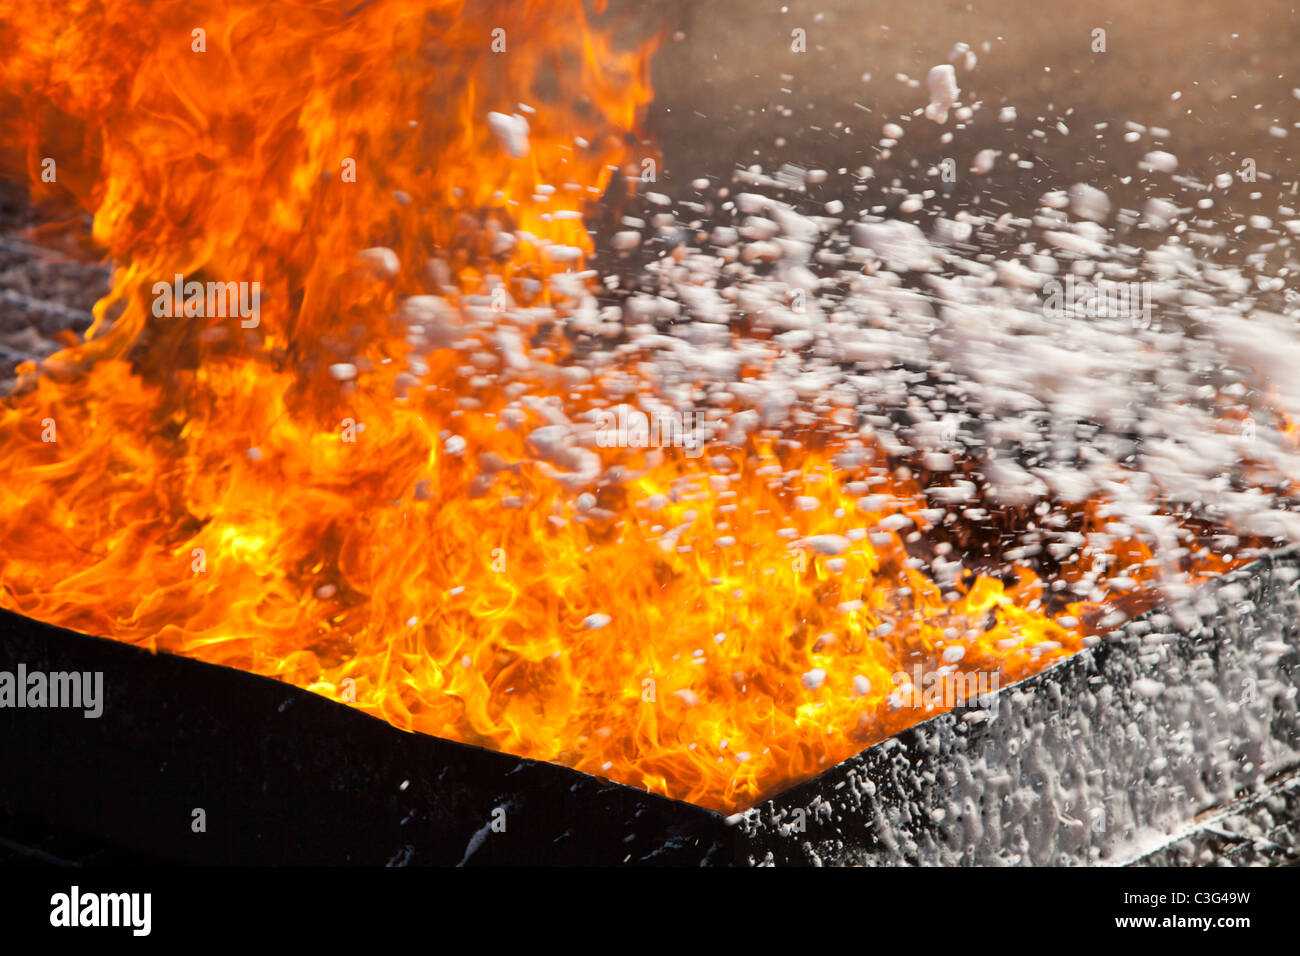 Fighting a fire with a foam fire extinguisher. - Stock Image